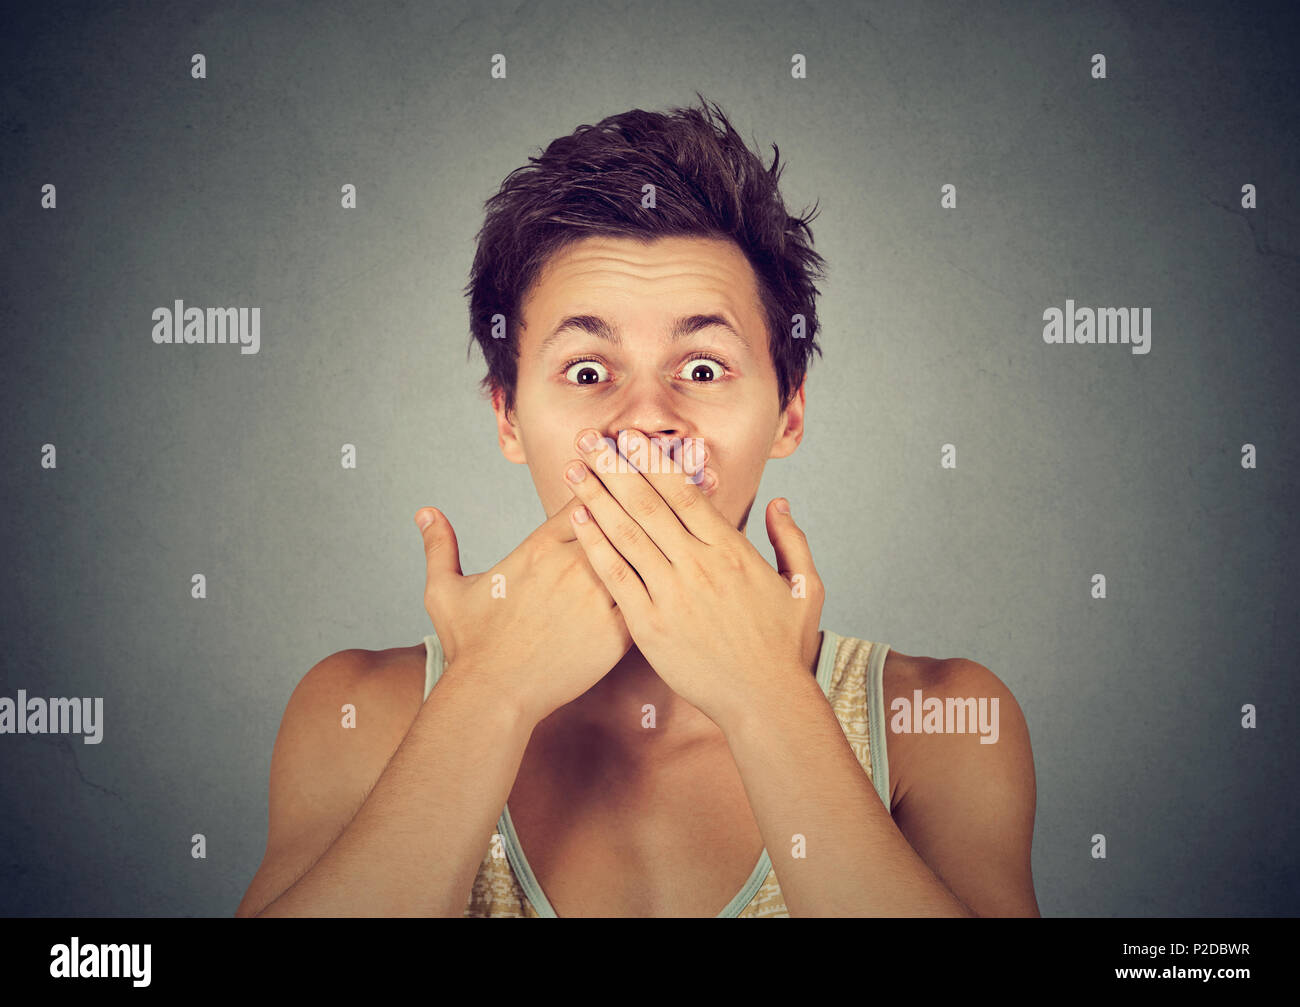 Young stunned guy covering mouth with both hands looking afraid of speaking and looking at camera on gray - Stock Image